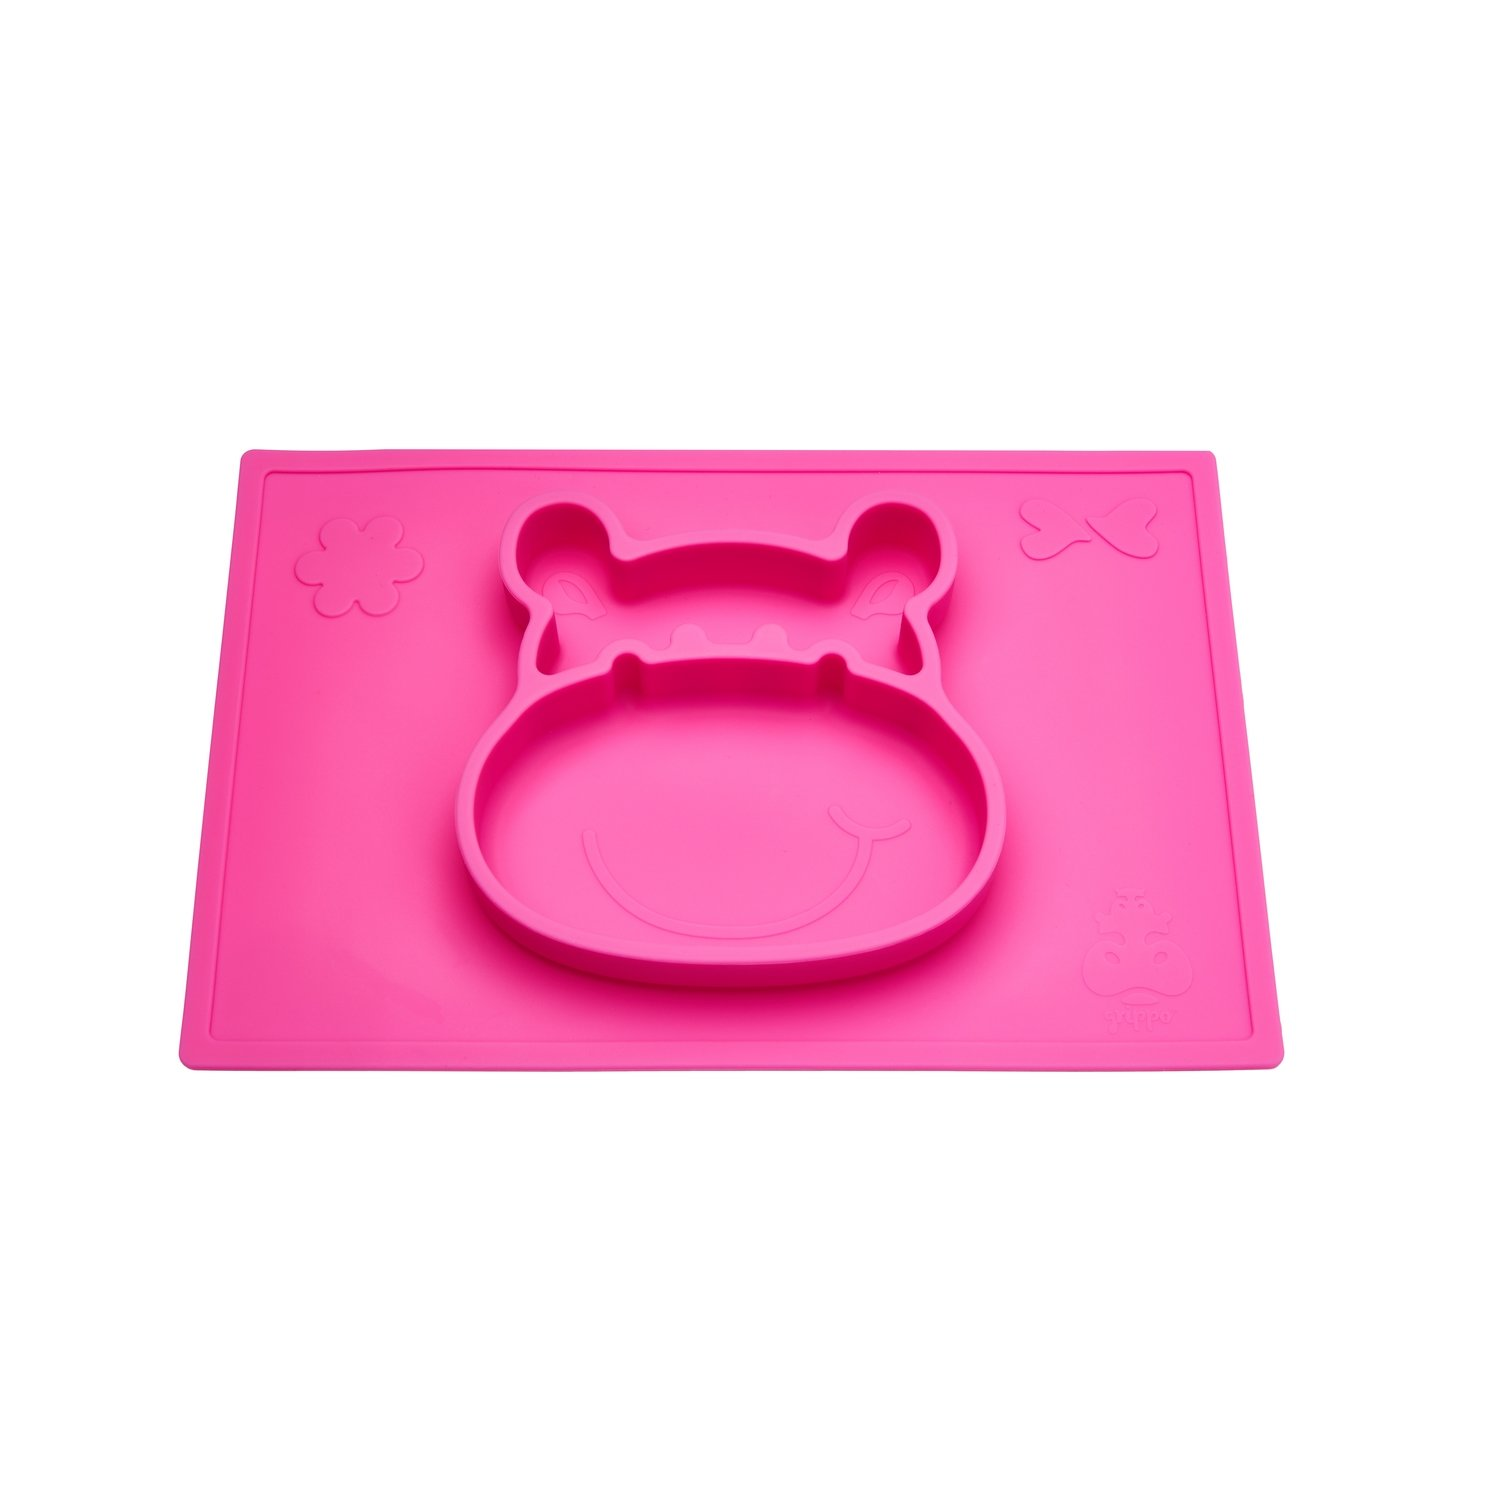 Grippo 2-in-1 Silicone Placemat and Plate in Pink